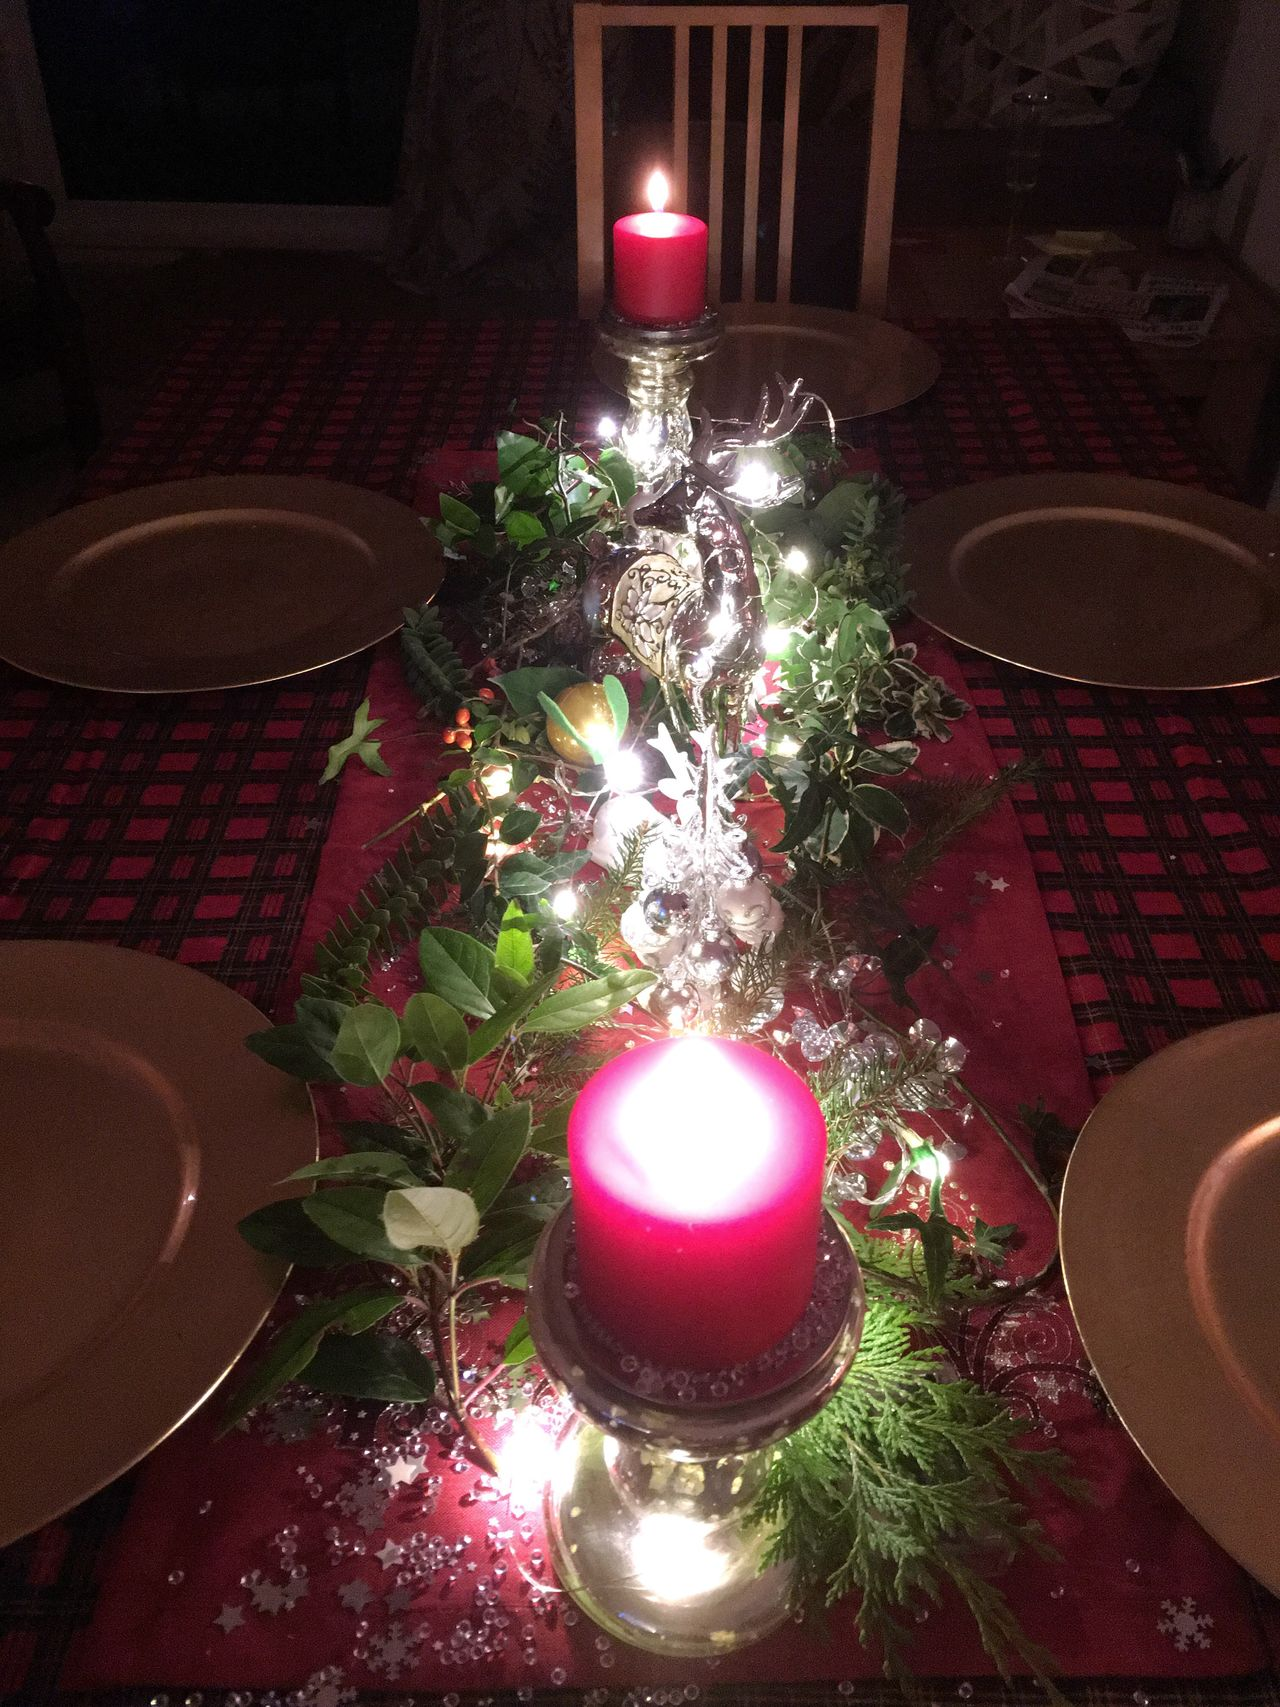 Christmas Christmas Table Candle Christmas Decoration Celebration Tradition 3XSPUnity 3XSPhotographyUnity 3XSPhotographiUnity 3XSPUnity